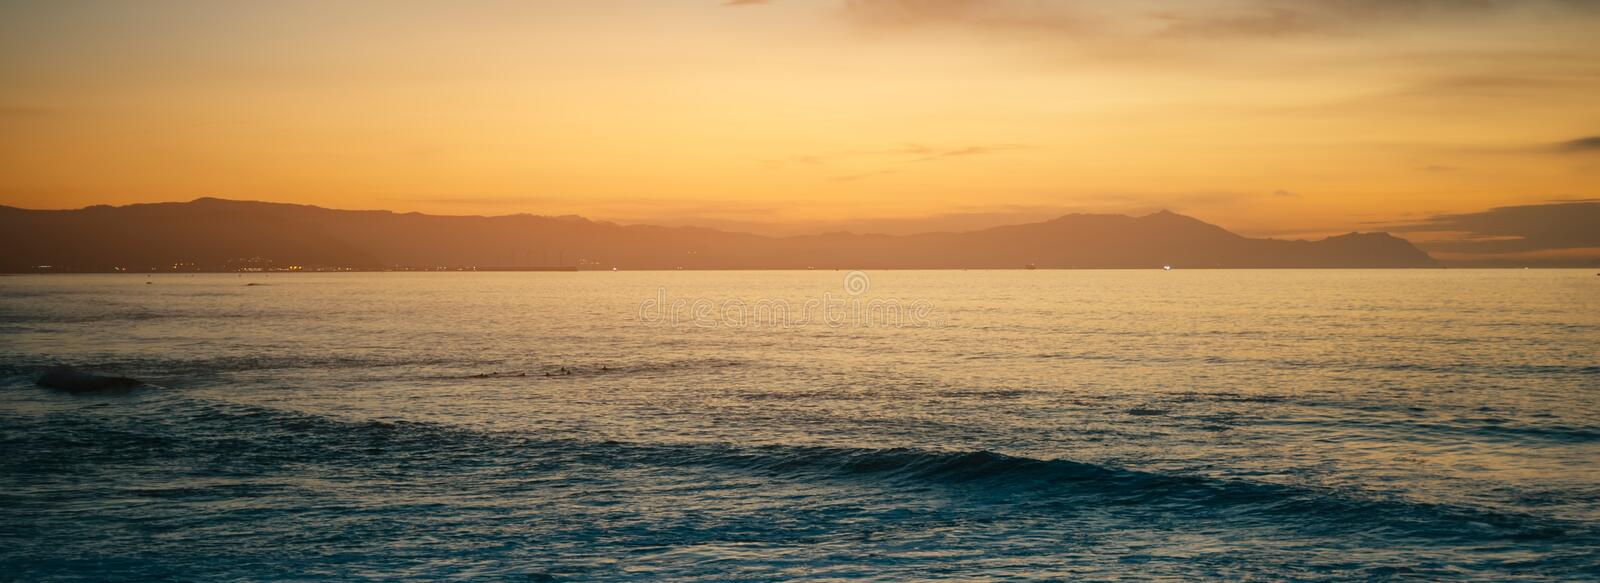 Clouds blue sky and gold sunlight sunset on horizon ocean, background seascape dramatic atmosphere rays sunrise. Relax view waves stock images